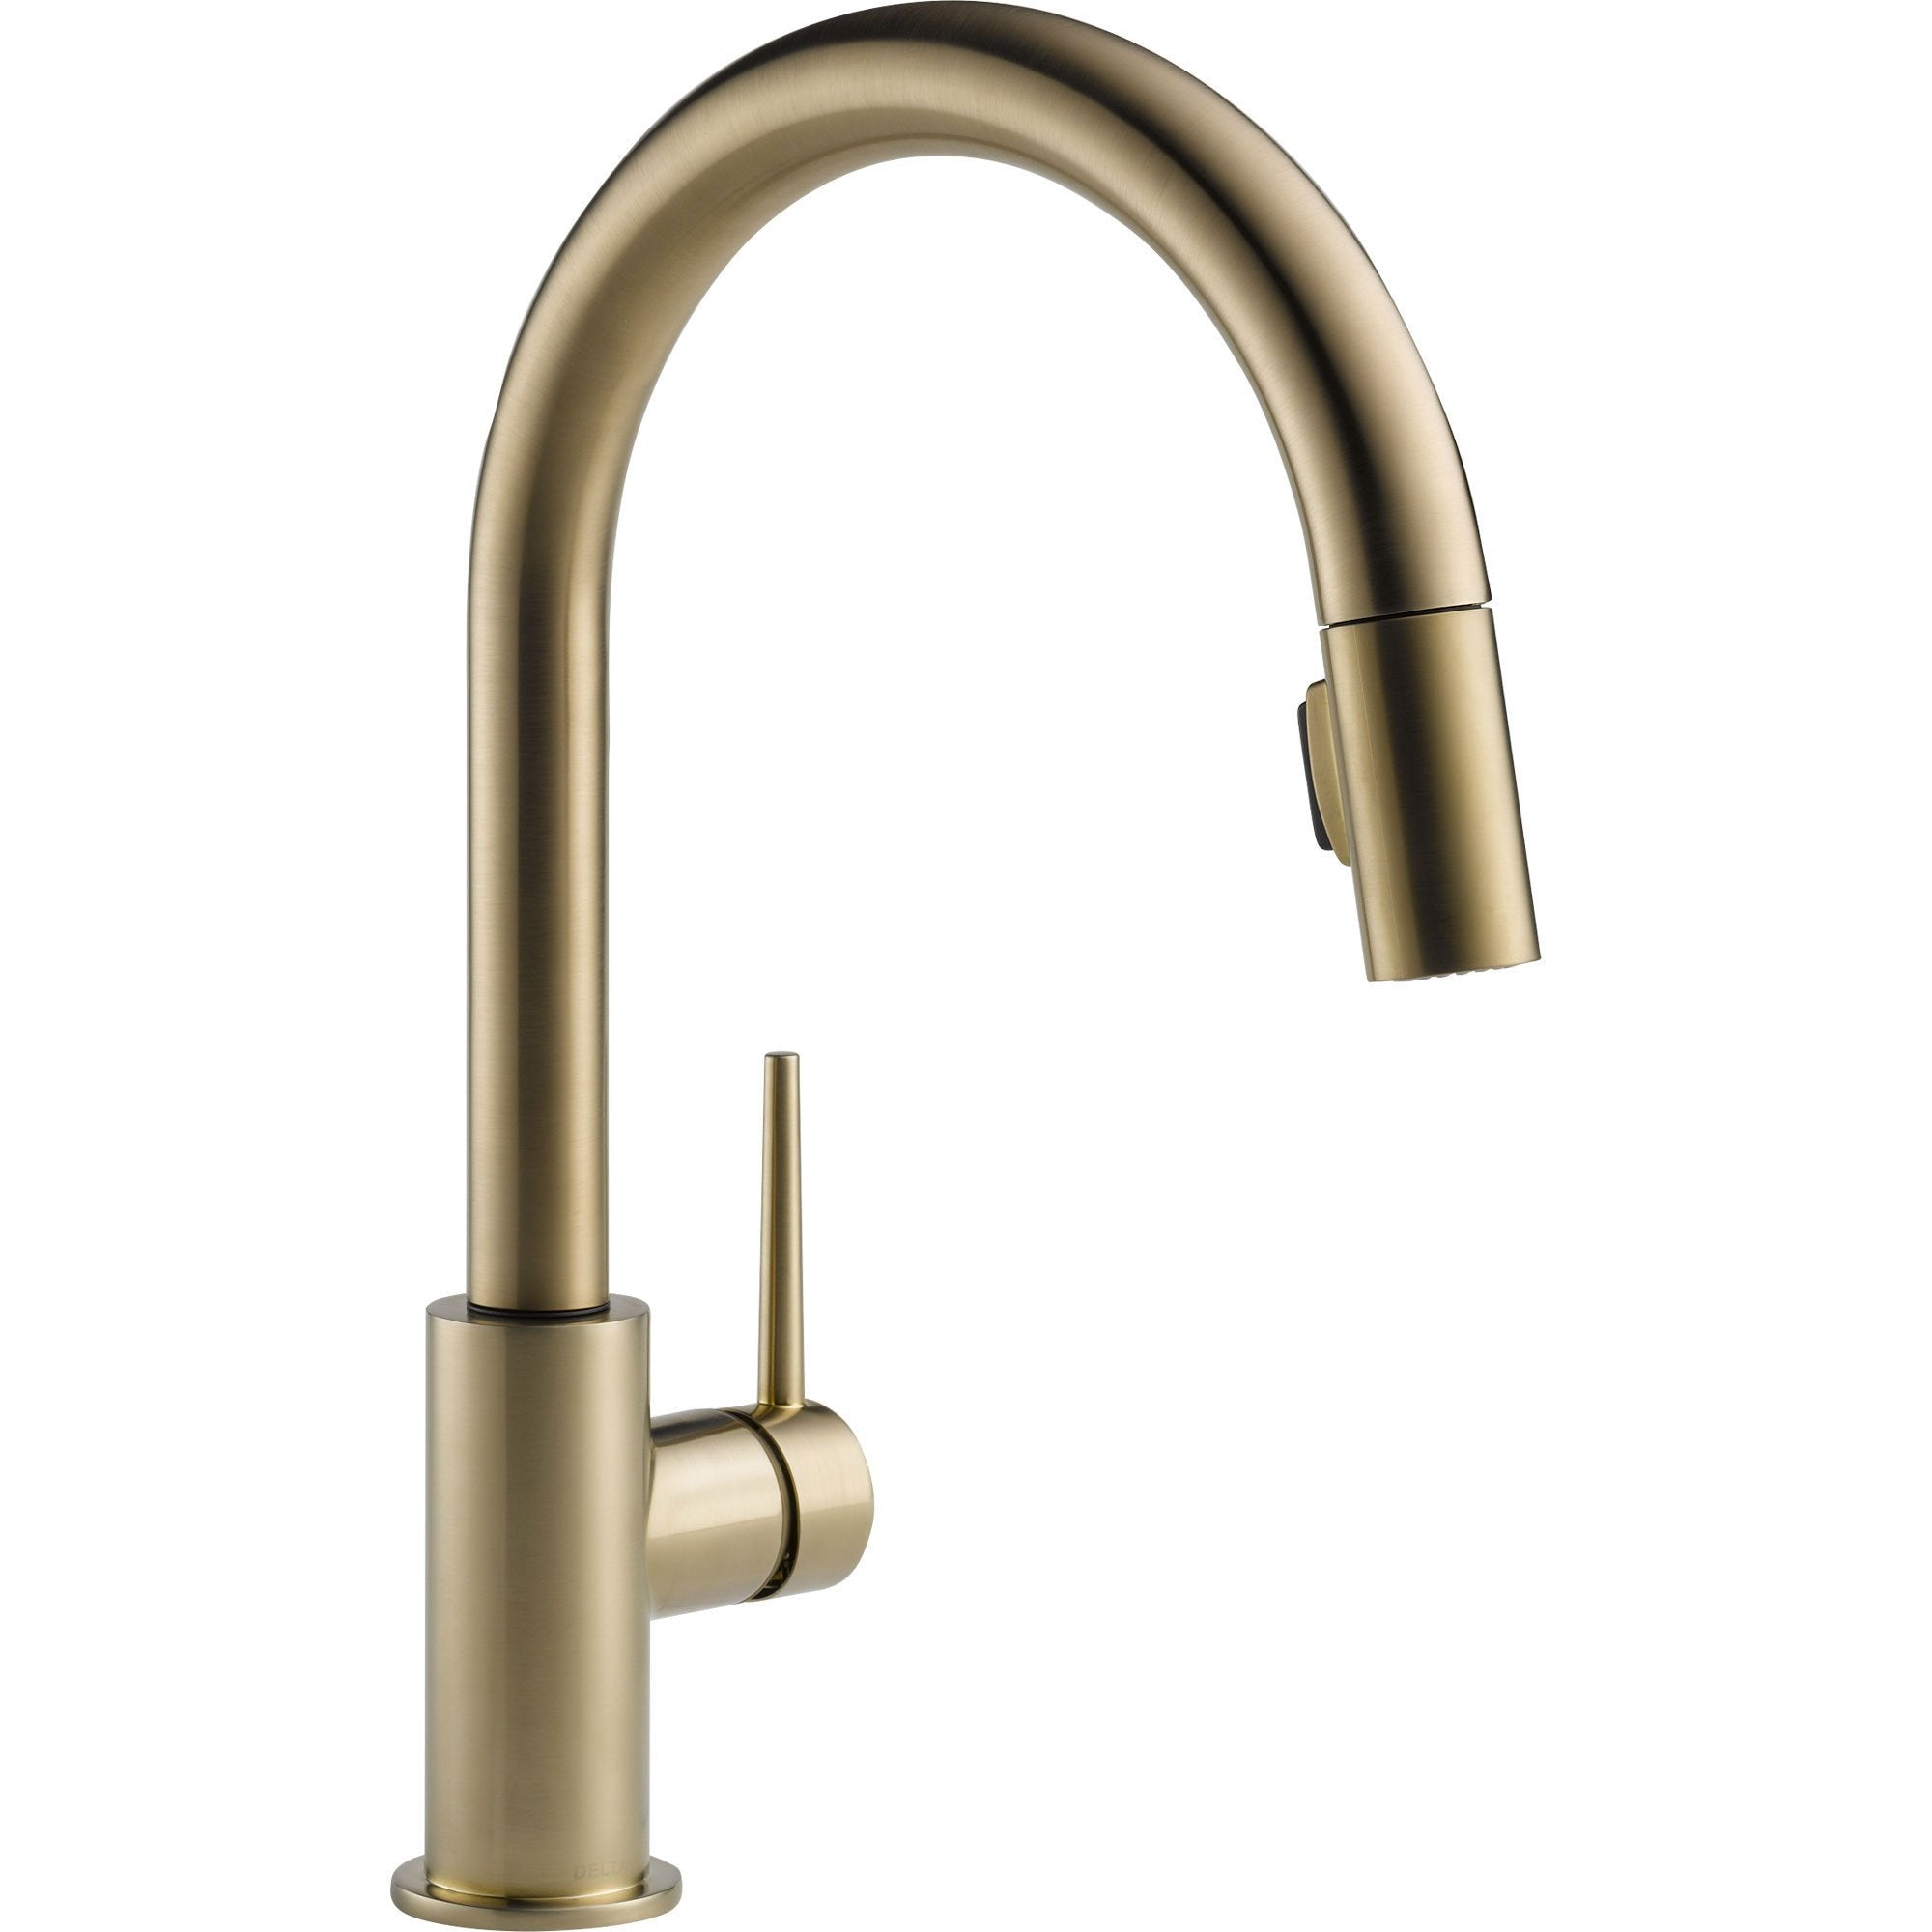 Delta Trinsic Modern Champagne Bronze Pull-Down Sprayer Kitchen Faucet 542659